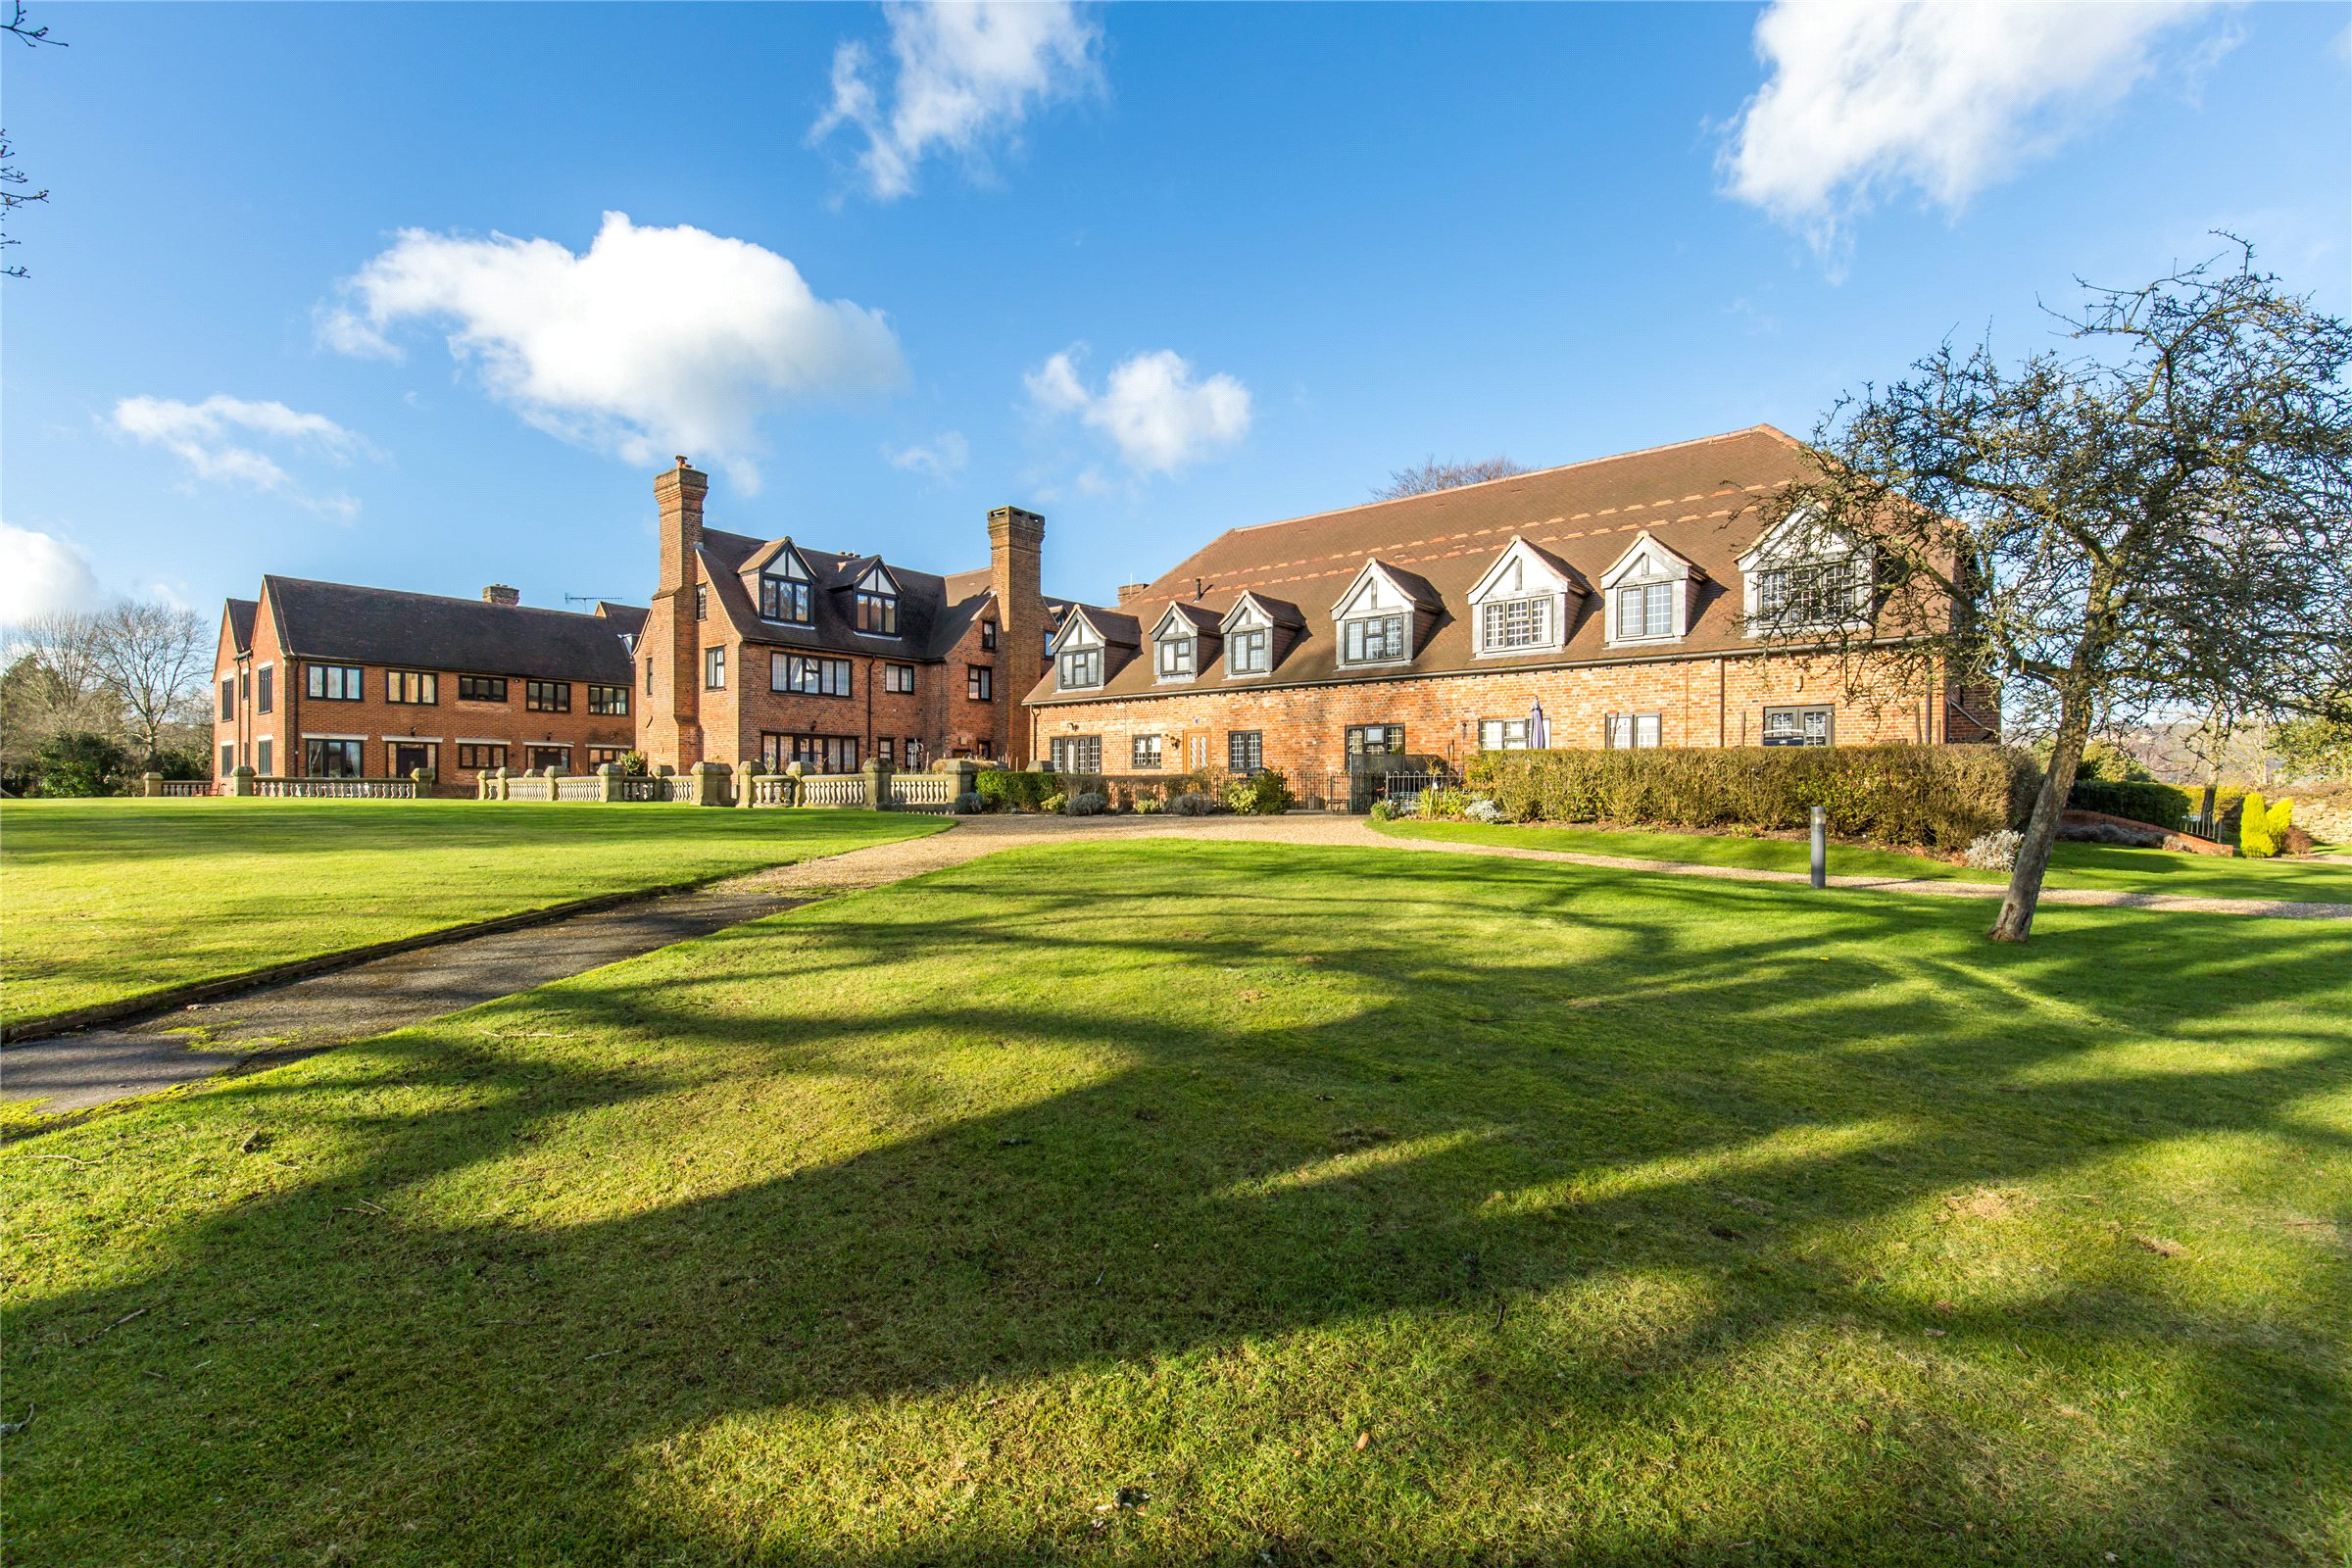 2 Bedrooms Apartment Flat for sale in Bonaly House, Neb Lane, Oxted, Surrey, RH8